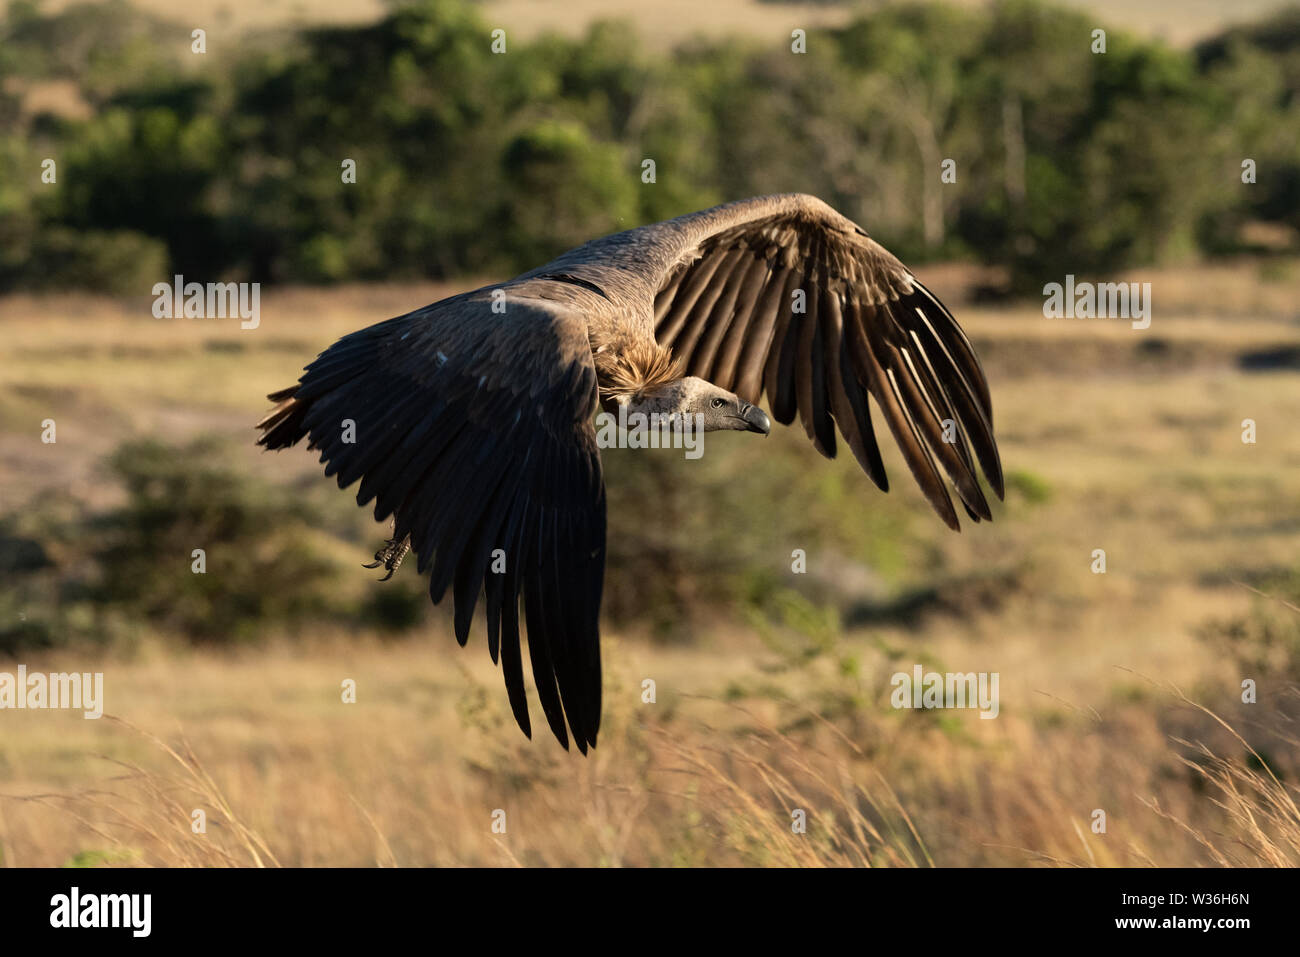 African white-backed vulture flies over long grass - Stock Image